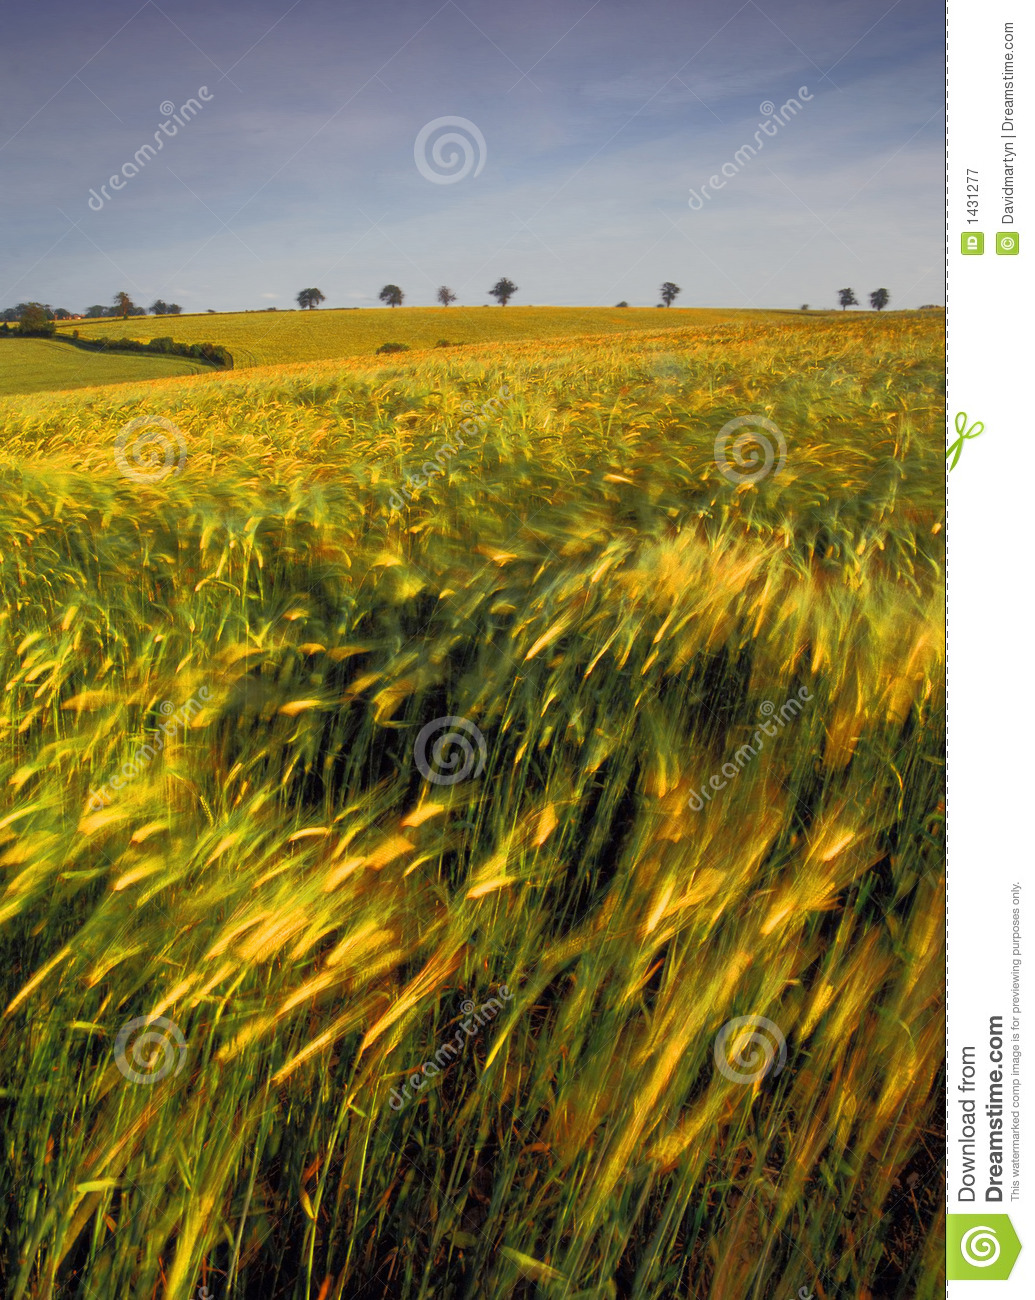 Farmland With Cereal Crops Stock Image. Image Of Rural